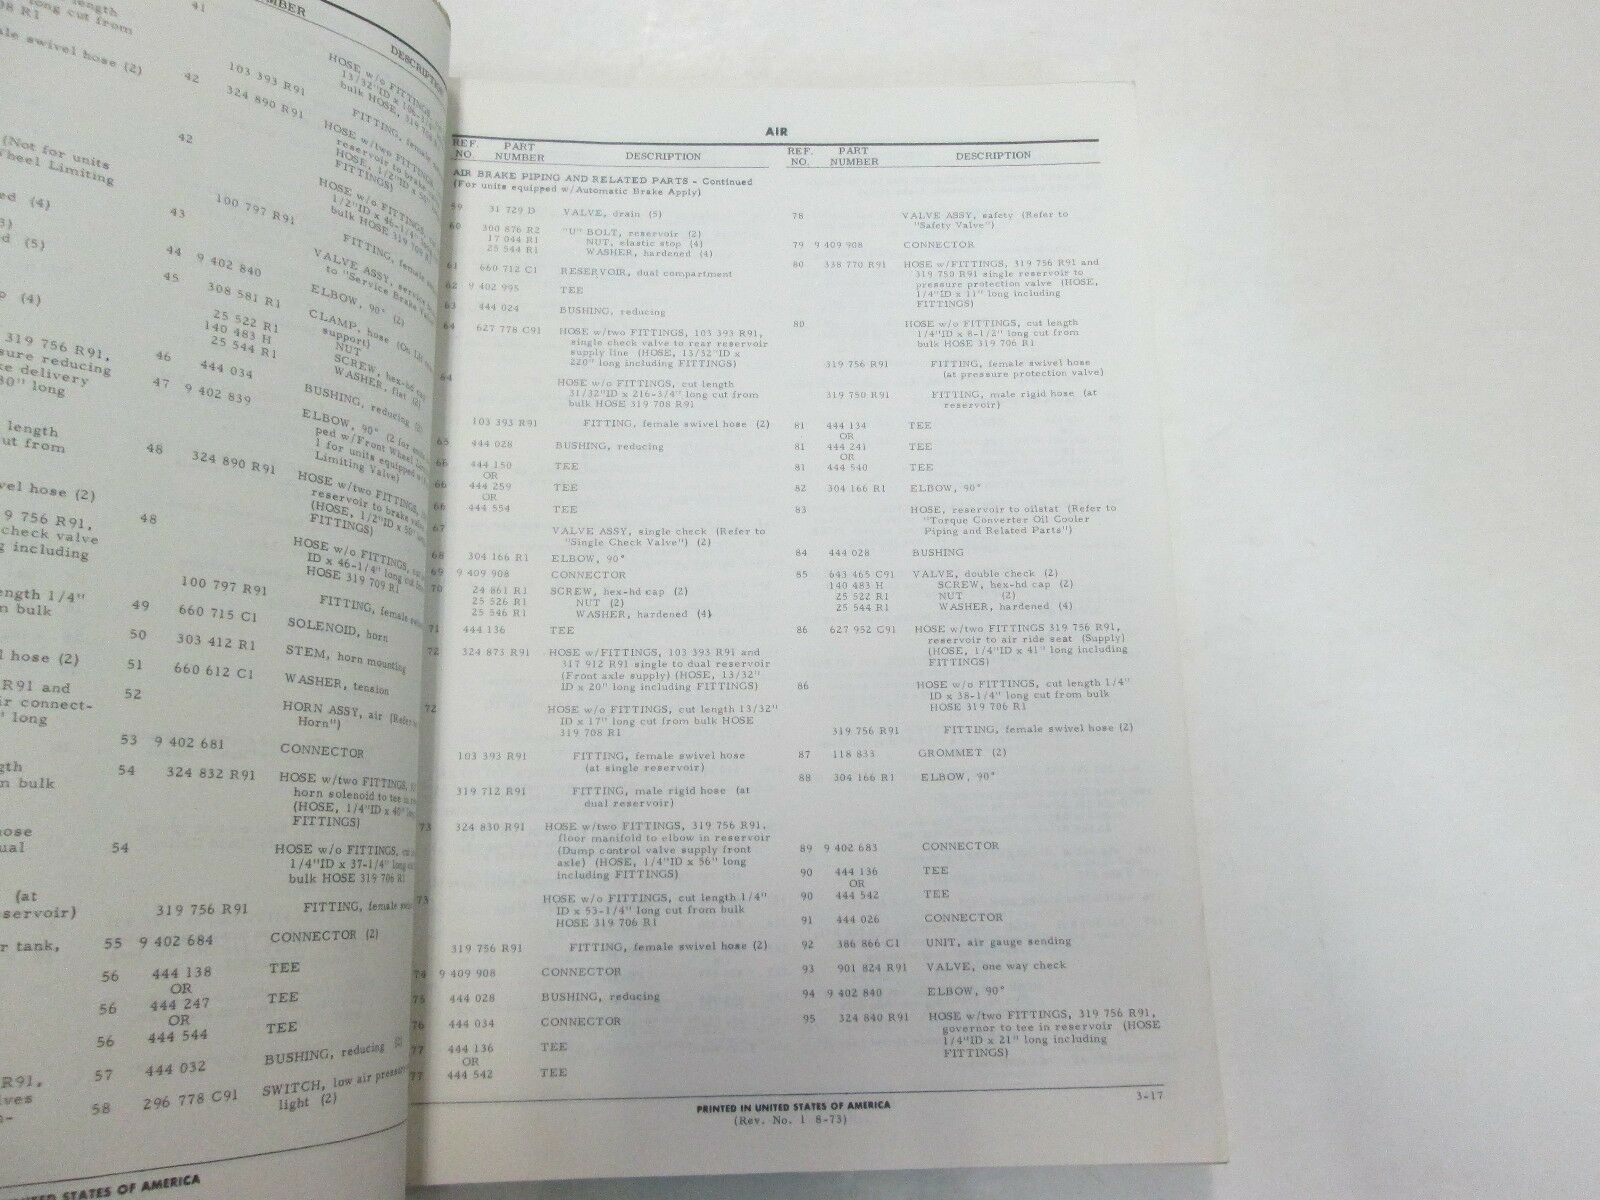 1973 International Modell 330 340 Pay Hauler Teile Katalog Manuell Neu Worn OEM